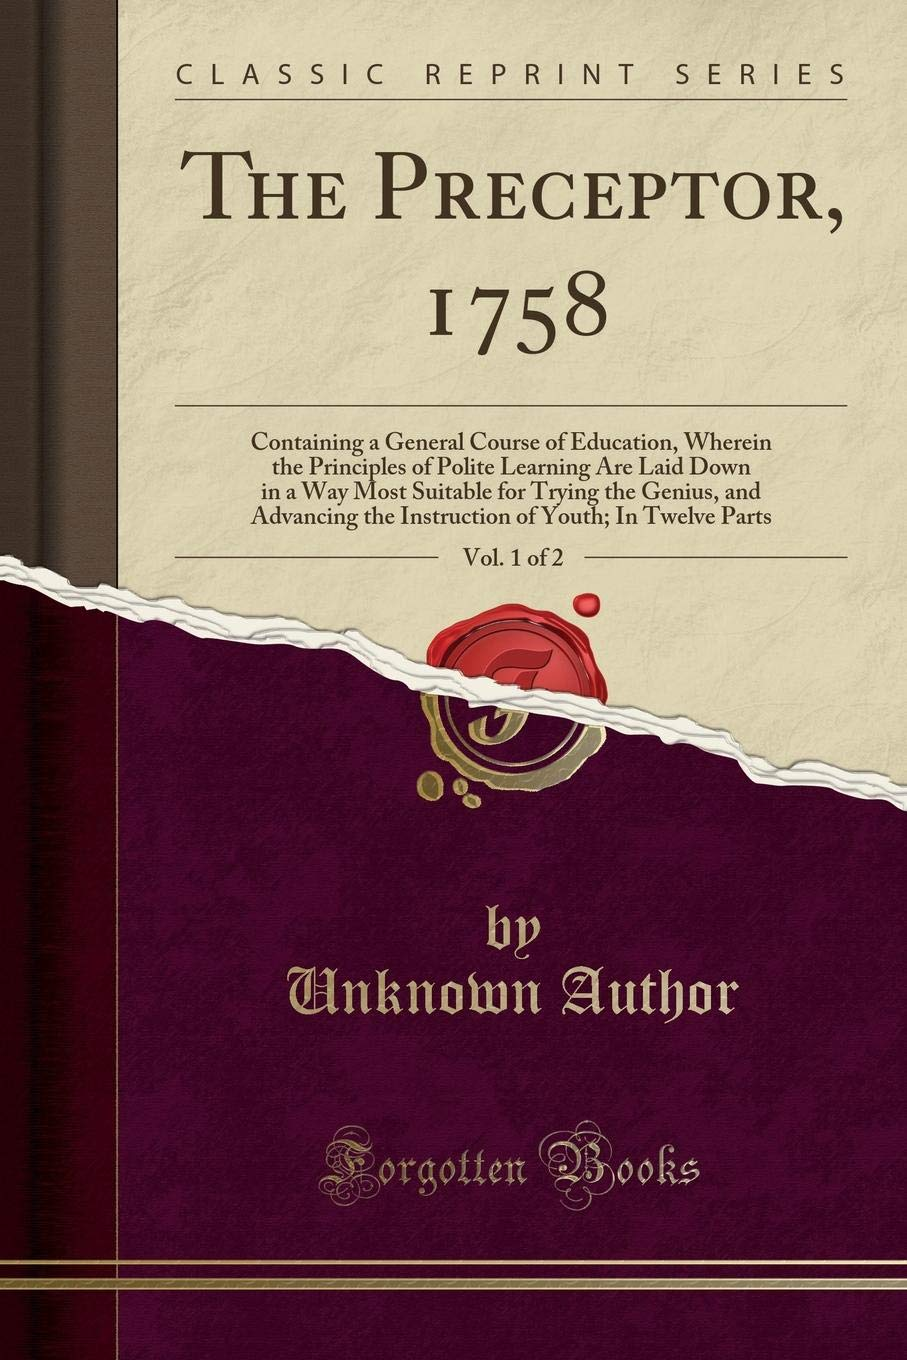 The Preceptor, 1758, Vol. 1 of 2: Containing a General Course of Education, Wherein the Principles of Polite Learning Are Laid Down in a Way Most ... of Youth; In Twelve Parts (Classic Reprint) ebook